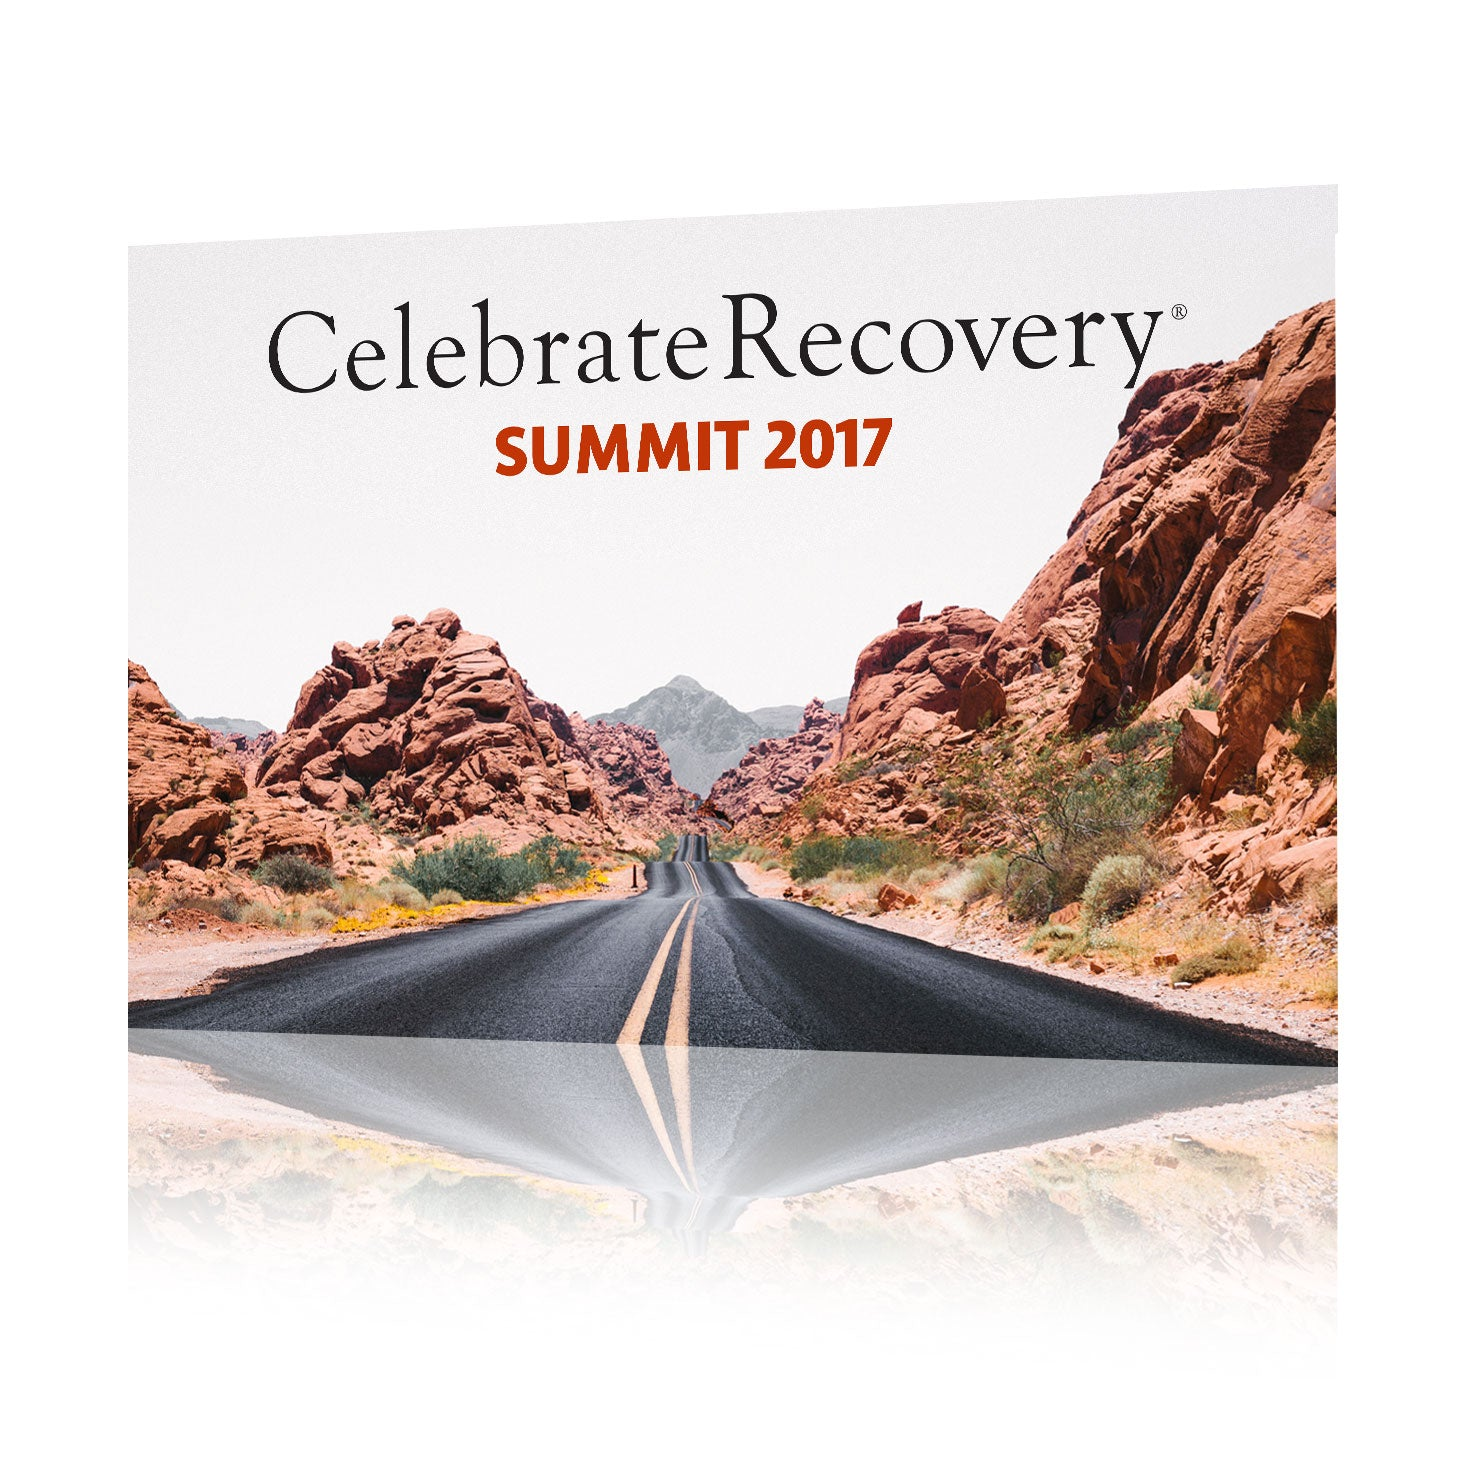 2017 Celebrate Recovery Summit: The Summit of Love